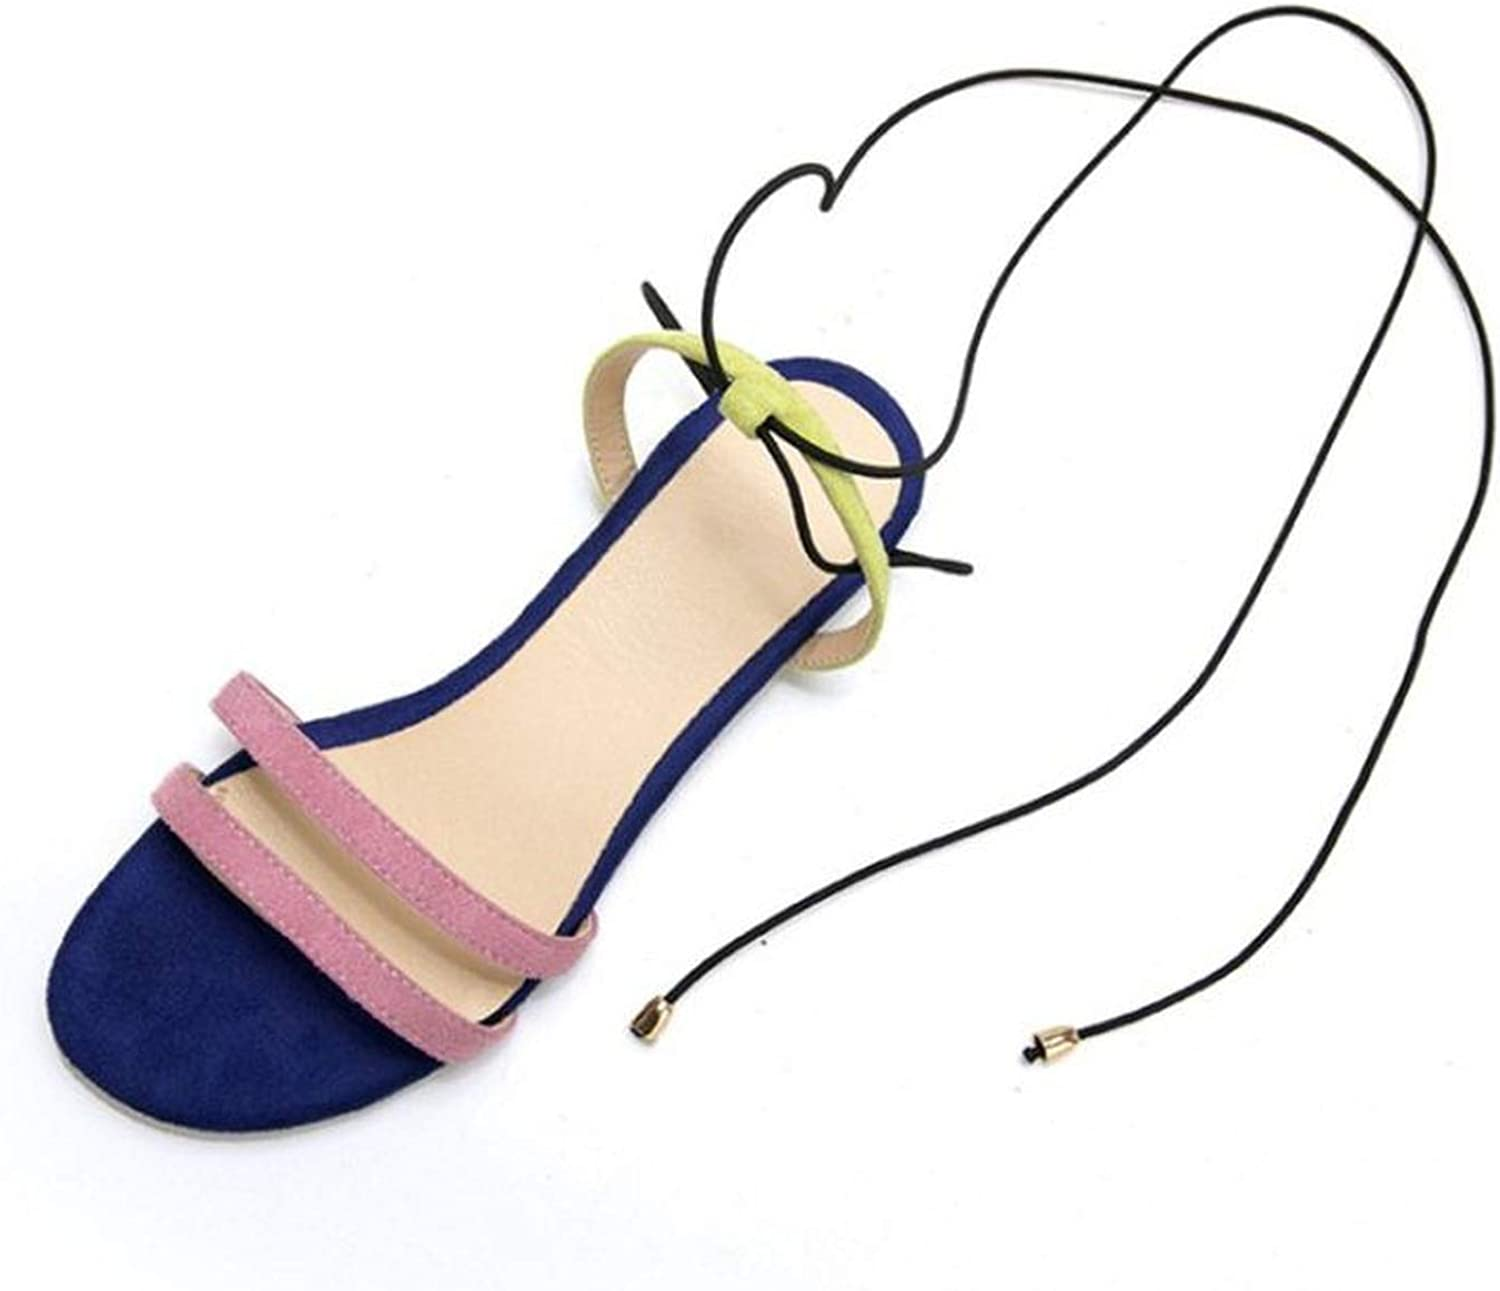 Forever Long Summer Women Sandals Sexy Ankle Strap Flats Sandals Casual shoes Women Beach Party shoes